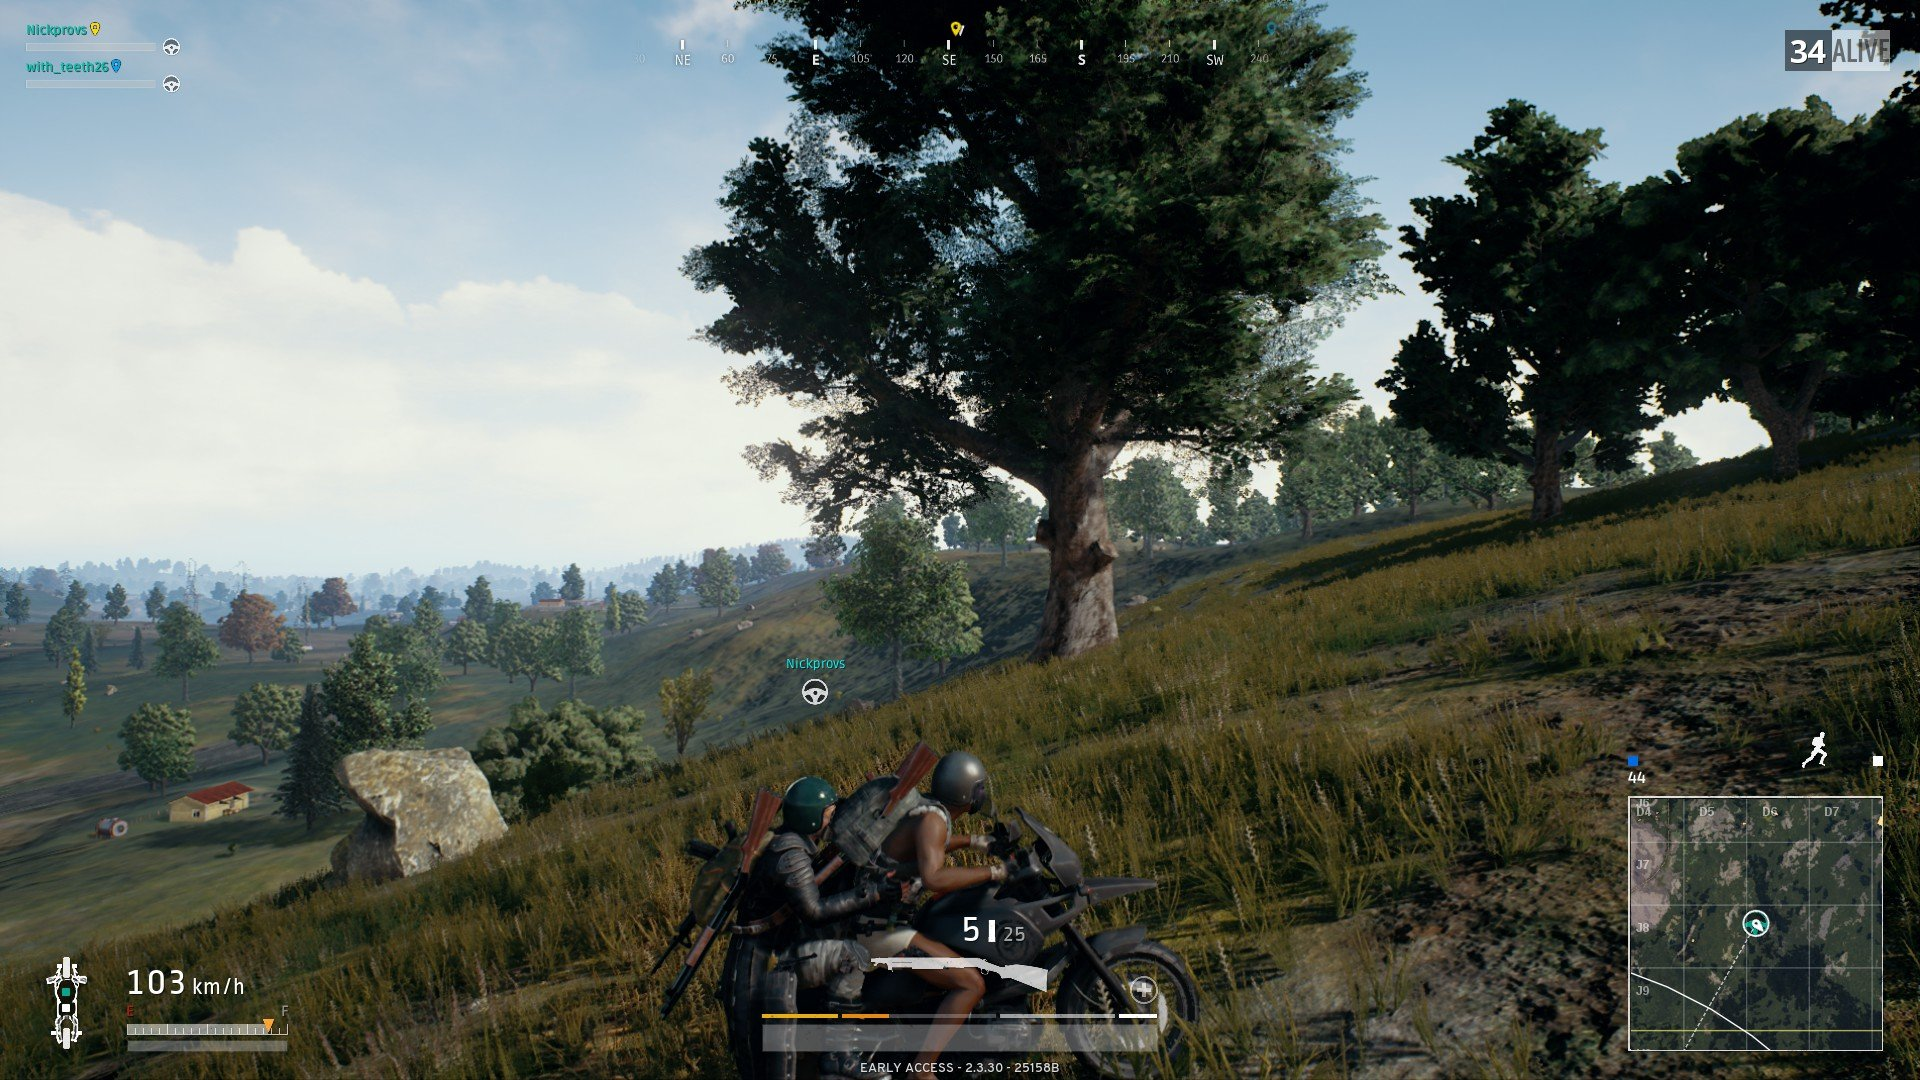 Pubg Multiplayer Pubg Prepares For Full Xbox One Launch Next Month Xbox One News